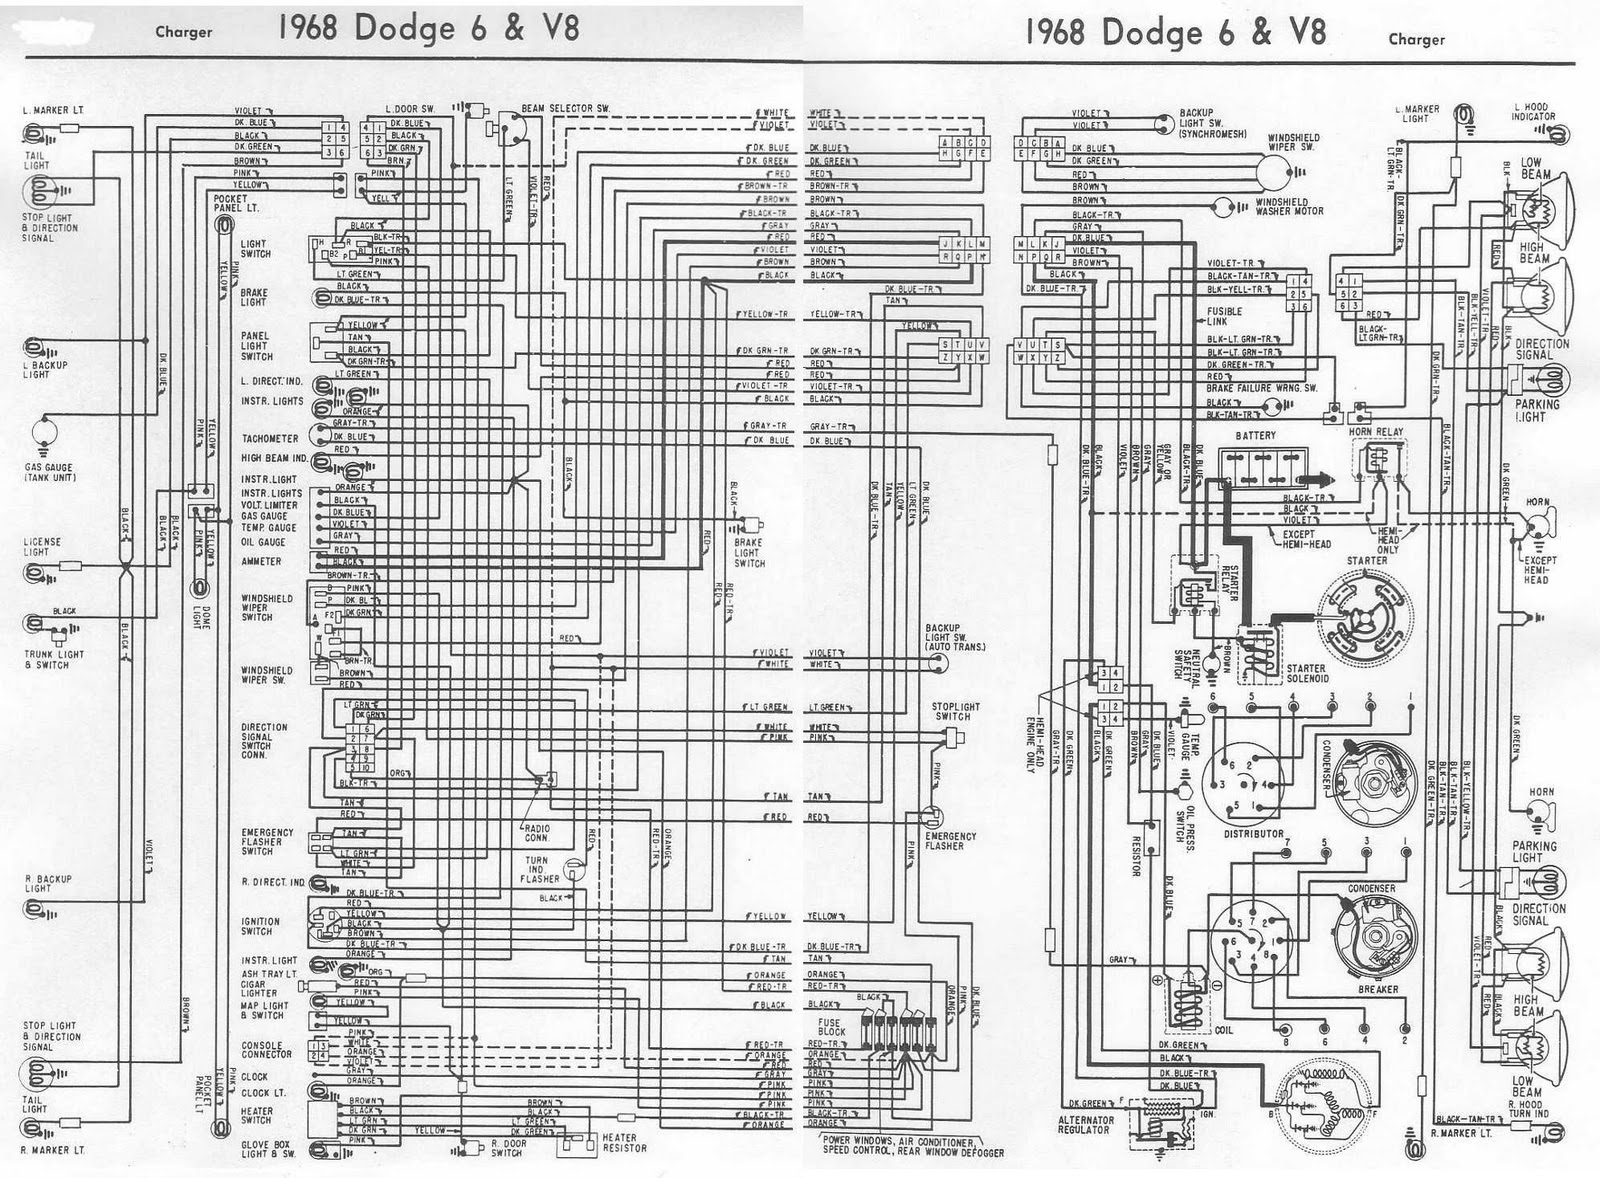 1968 Cadillac Ignition Wiring Diagram Schematic Custom Project 82 Camaro Engine Bay Dodge Charger 6 And V8 Complete Electrical